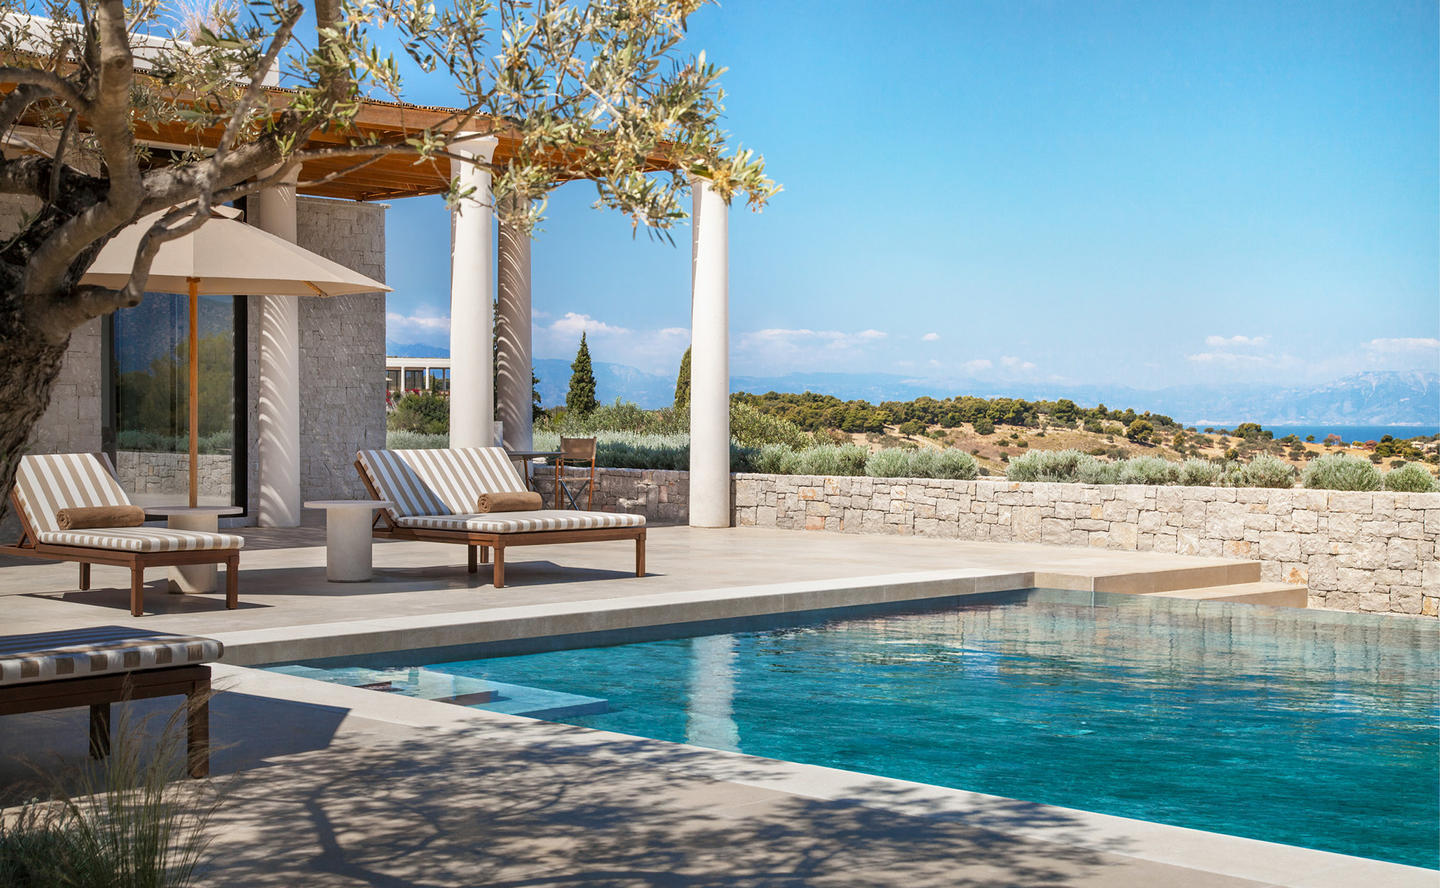 Swimming Pool Terrace, Six-Bedroom Villa - Amanzoe, Greece